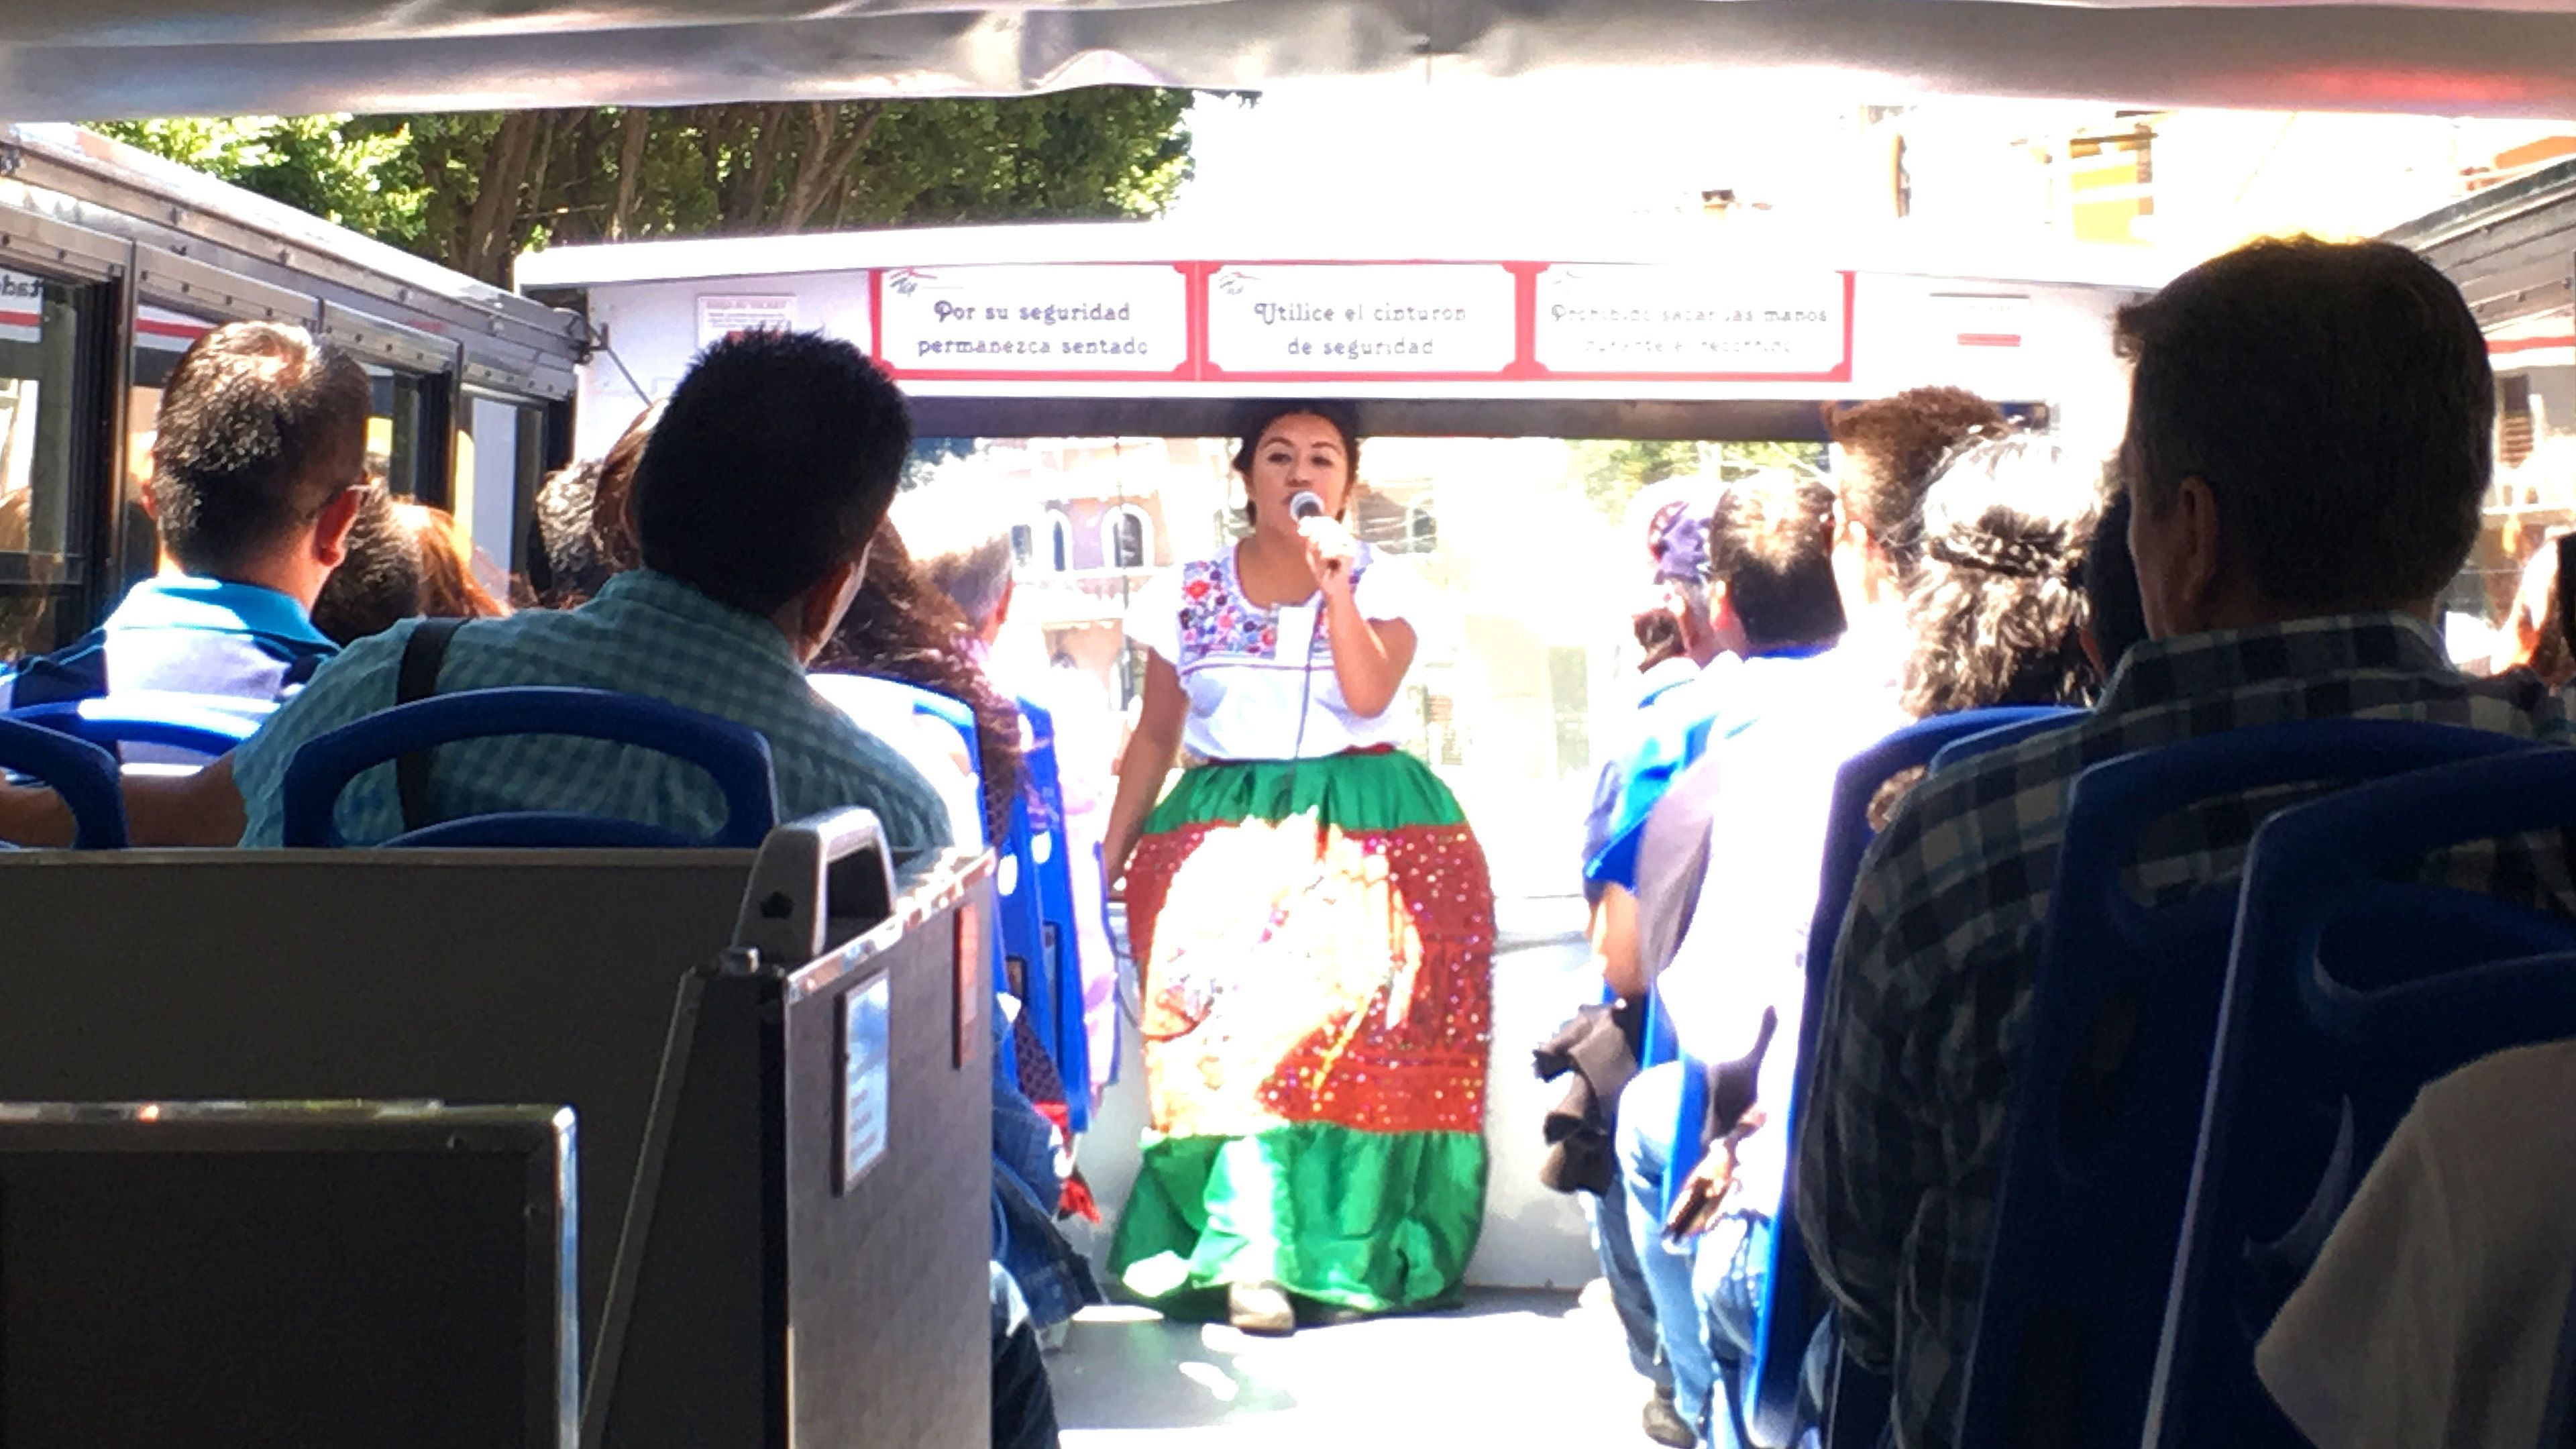 Tour guide talking to tourists on double decker tour bus in Puebla